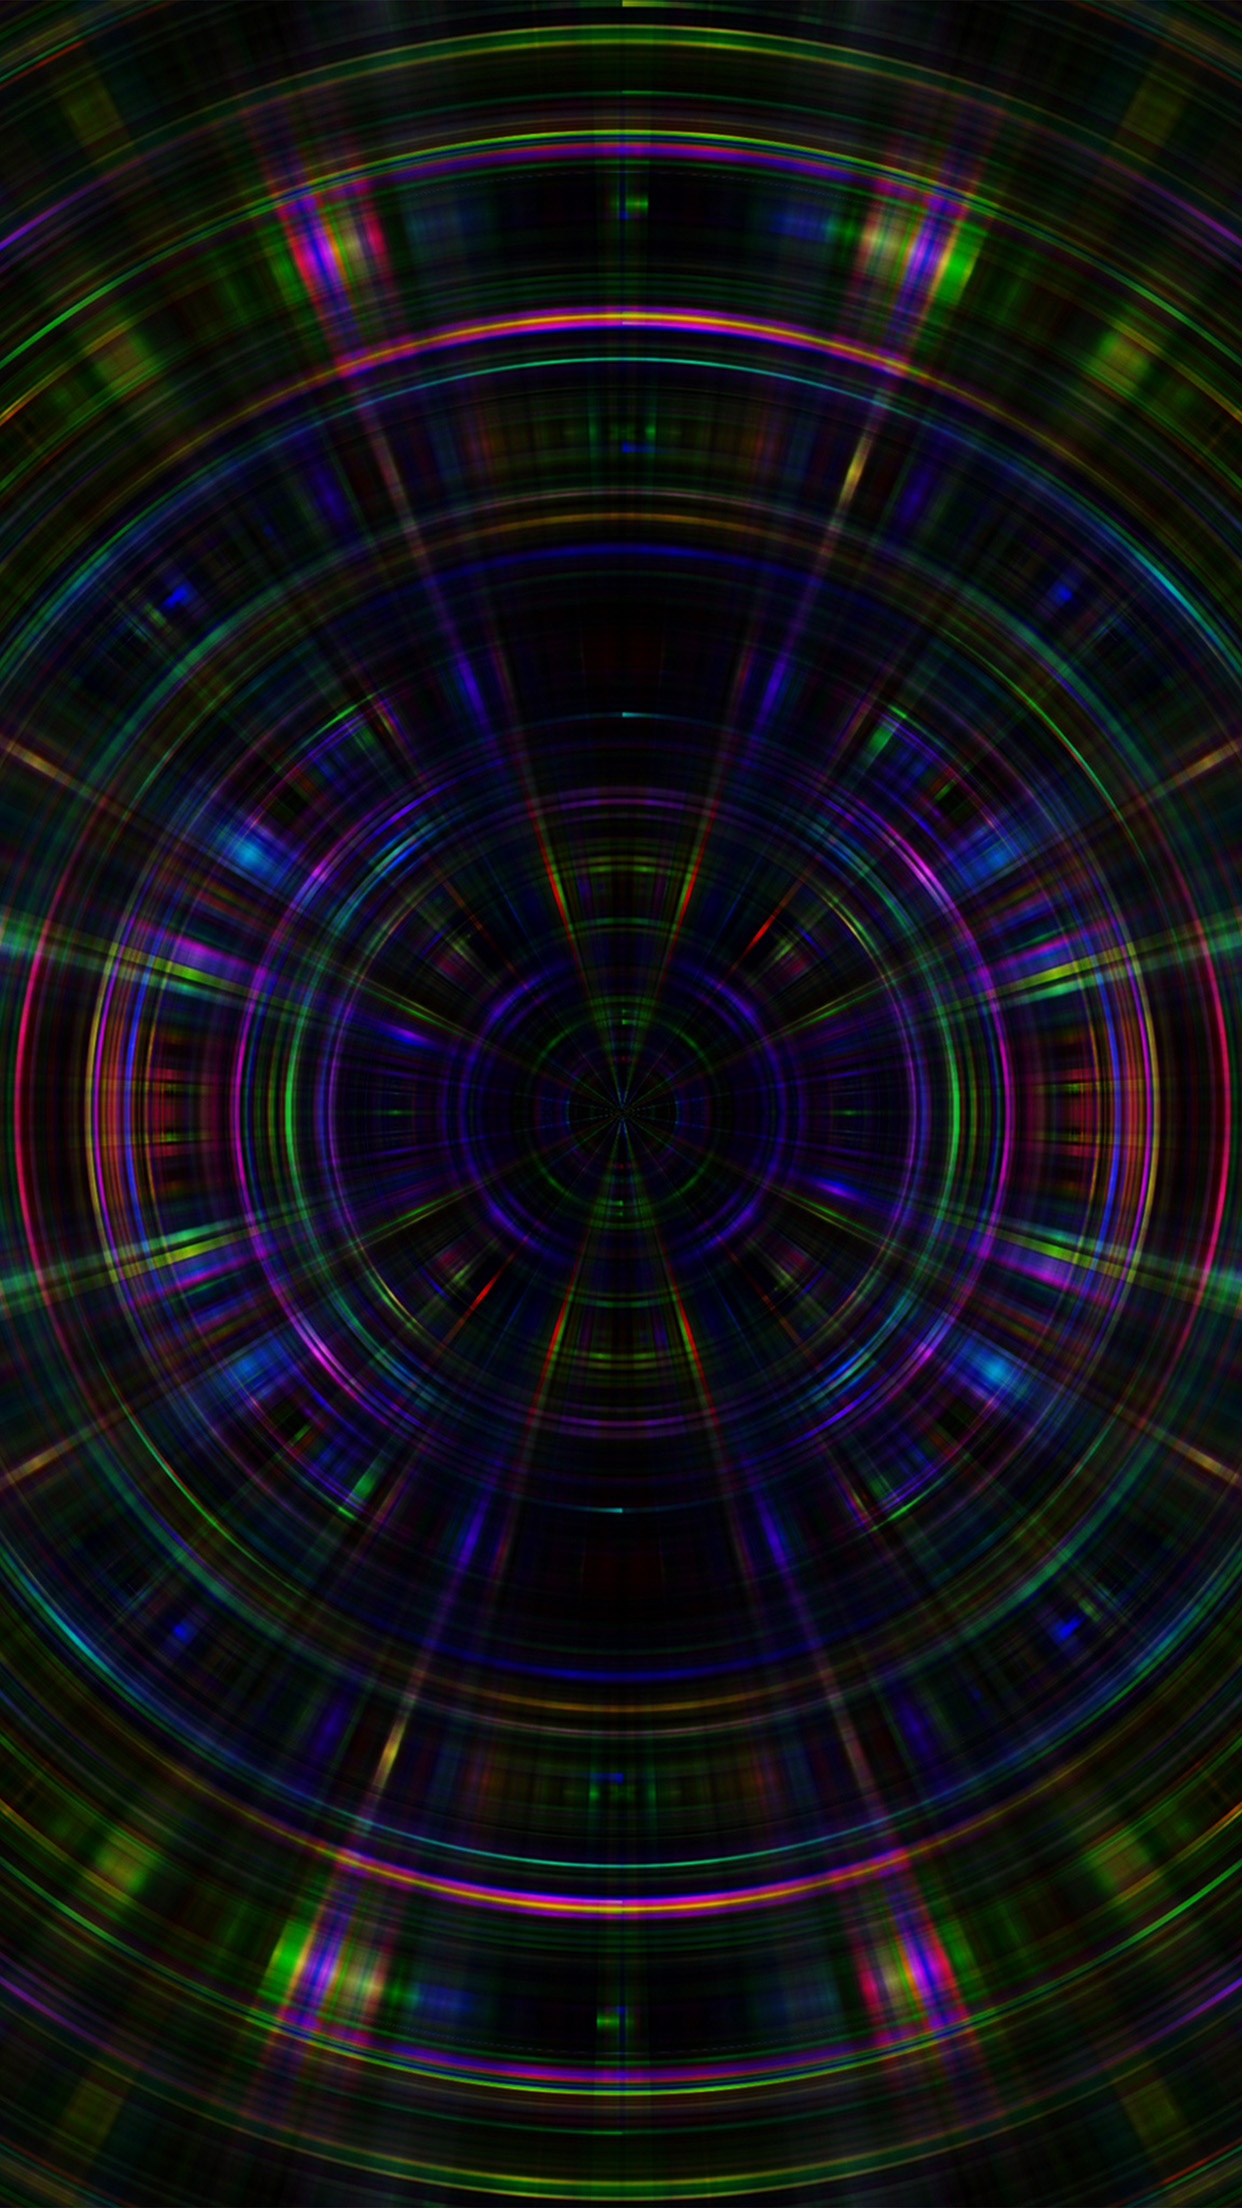 Vt10 Psychic Color Circle Abstract Dark Rainbow Pattern Wallpaper